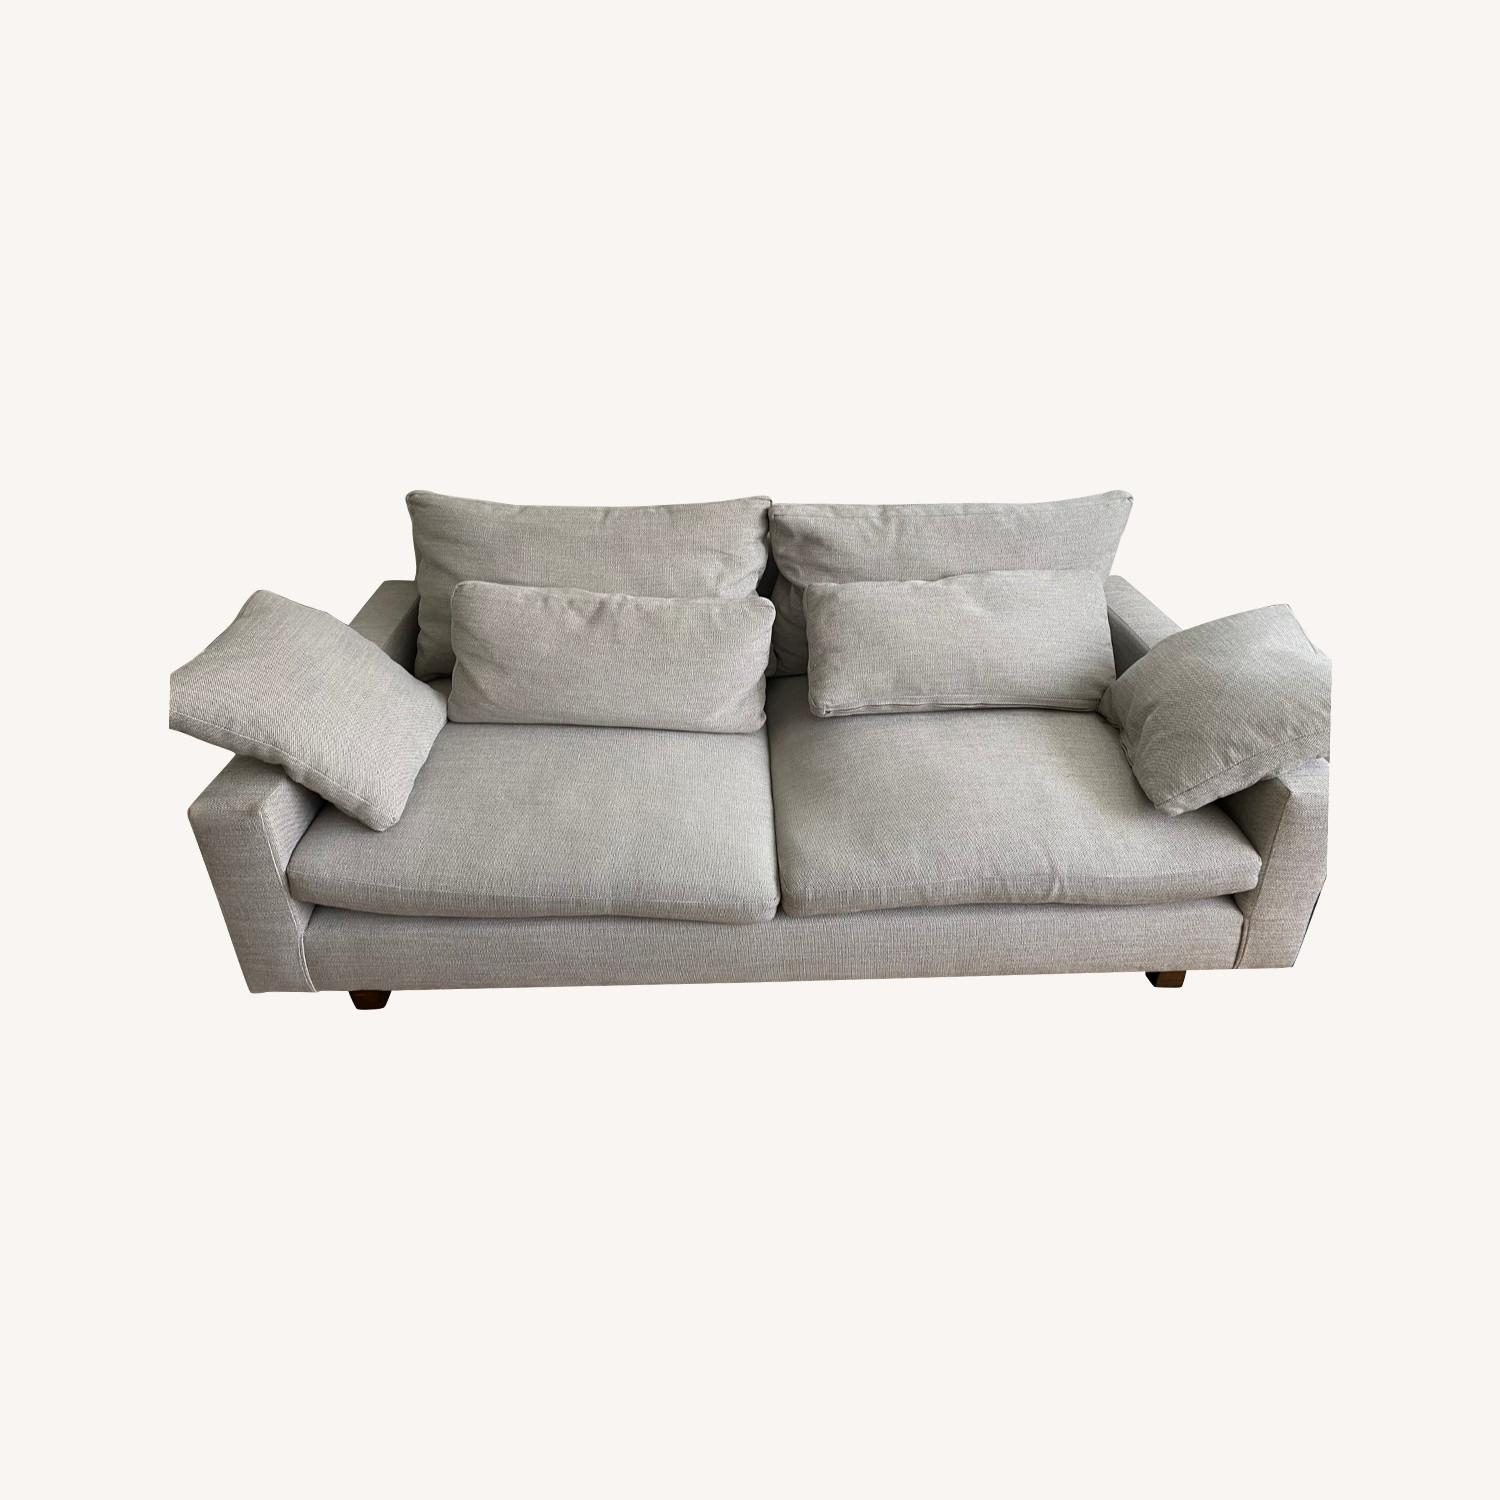 West Elm 2 Seat Couch - image-0